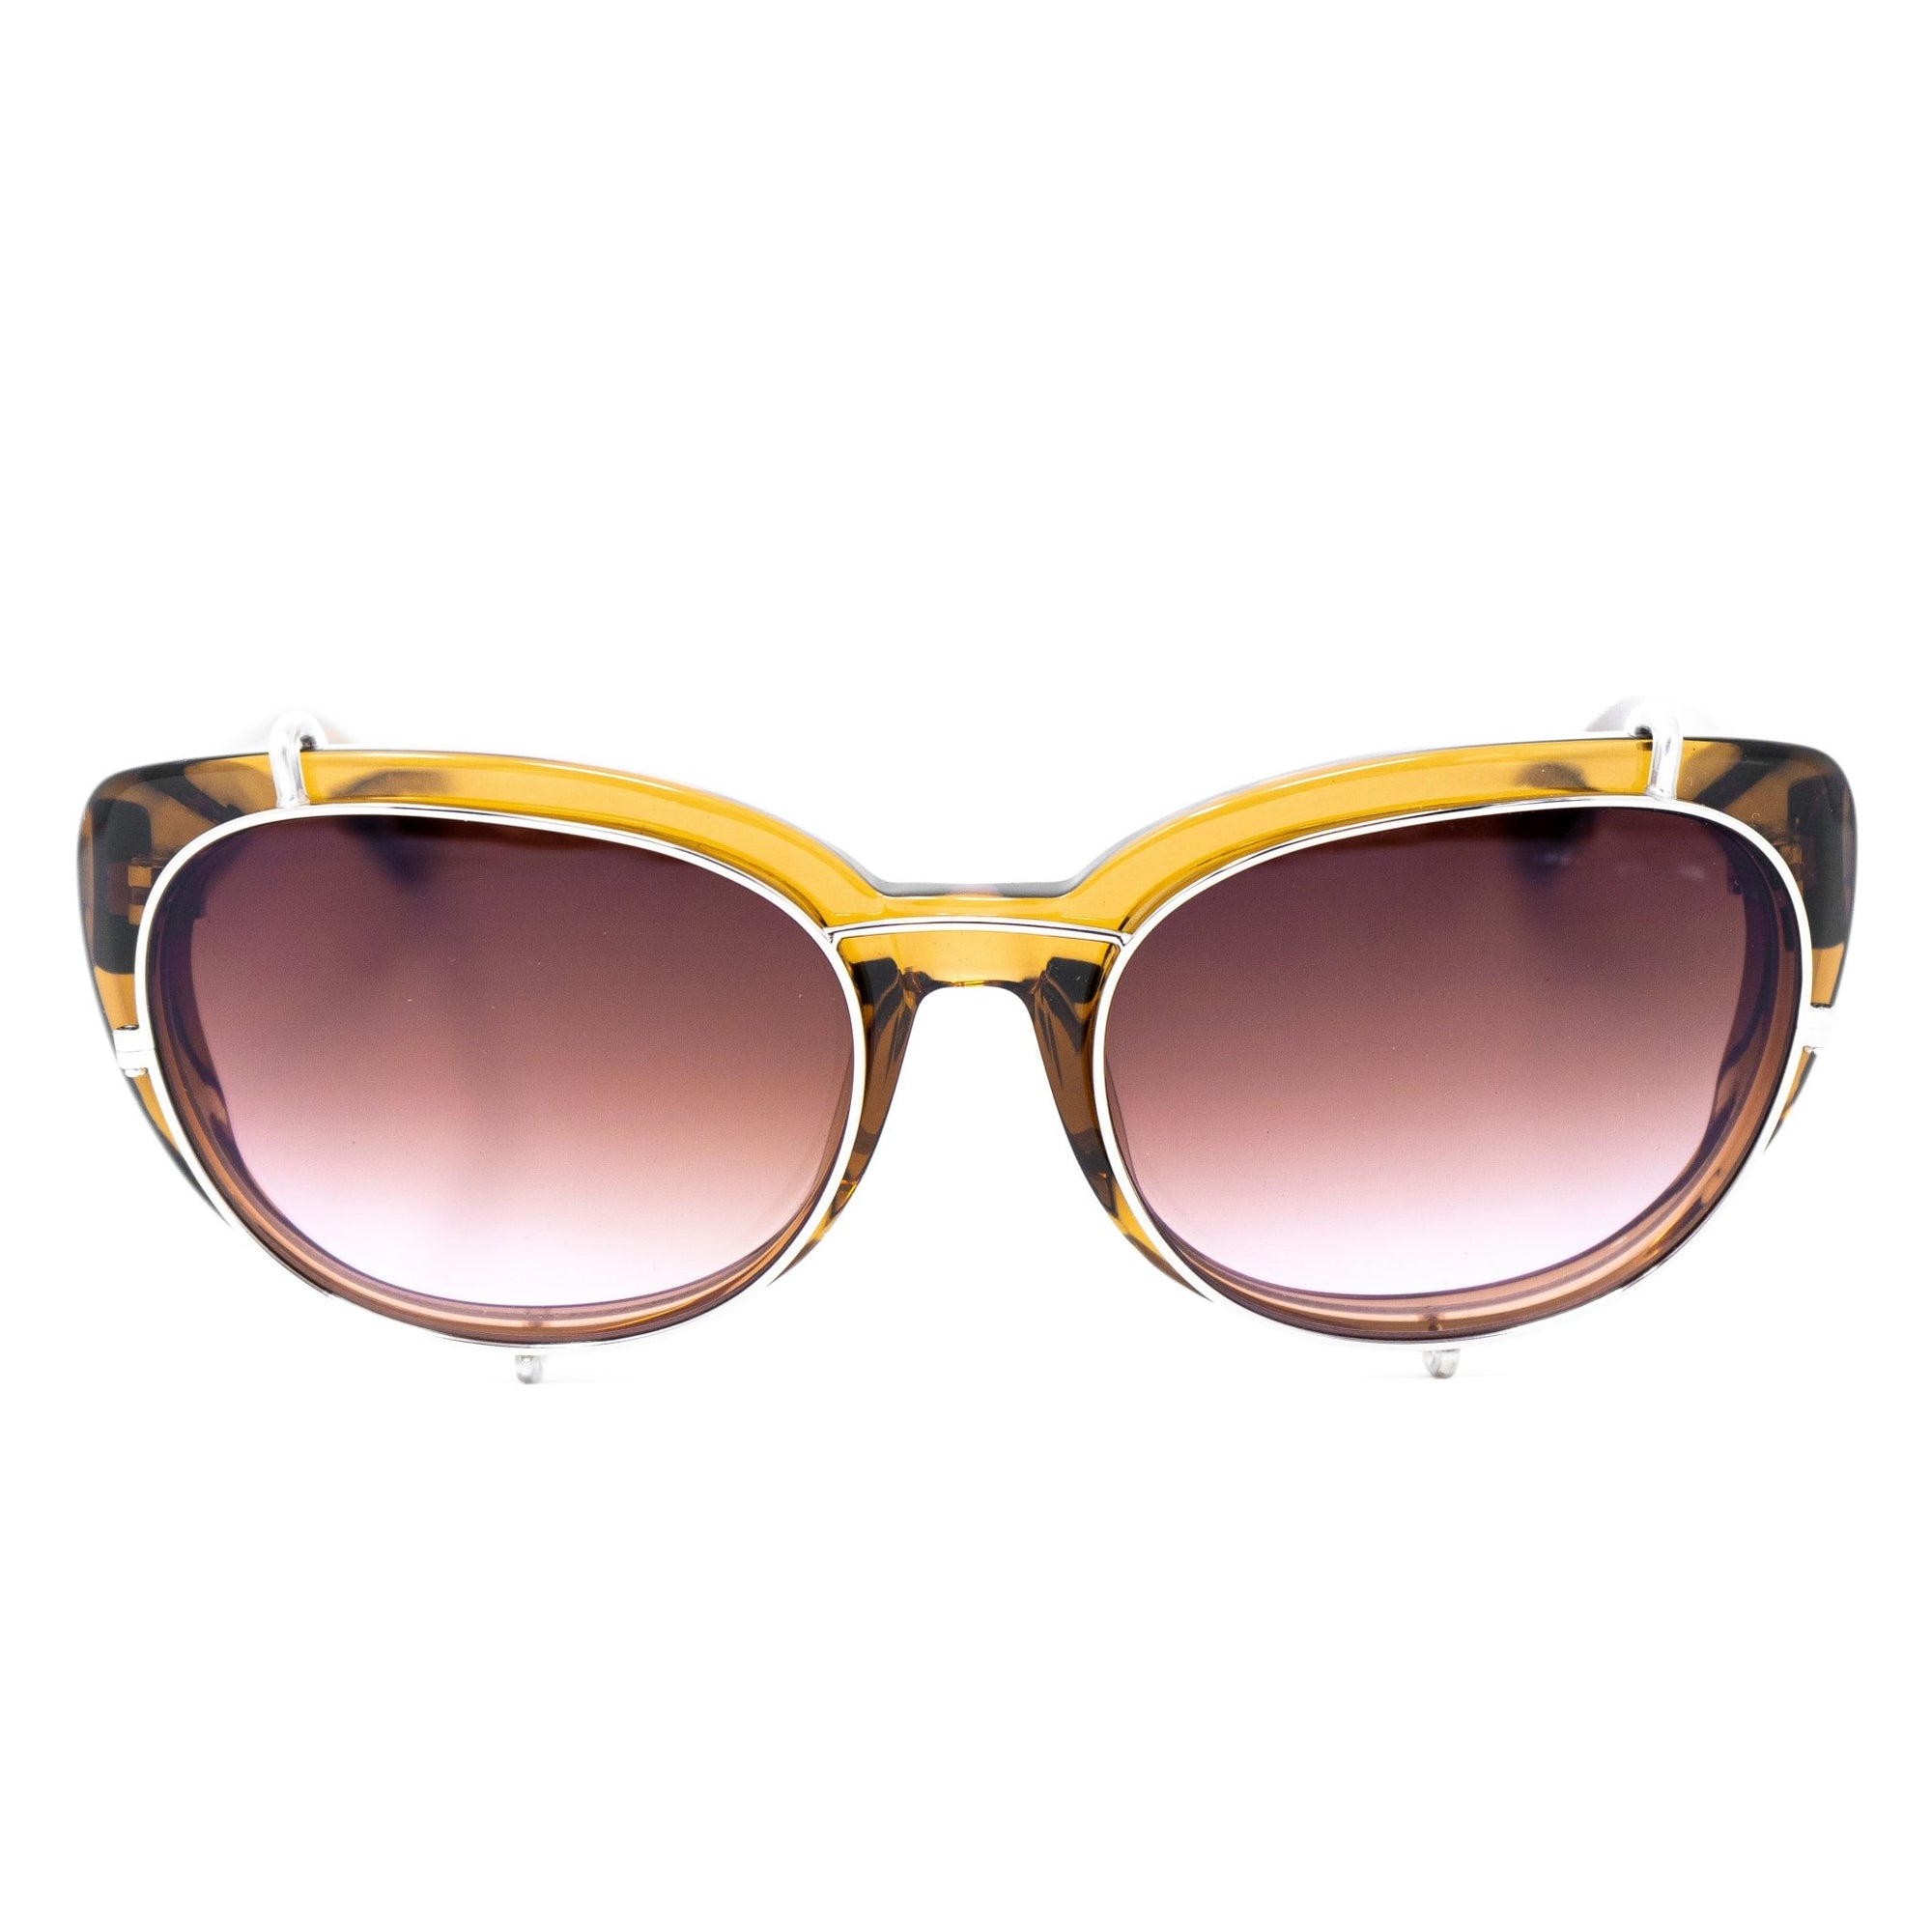 Yohji Yamamoto Women Sunglasses Cat Eye Brown and Brown/Pink Graduated Lenses - 9YYEBUTTERFLYC3BROWN - Watches & Crystals